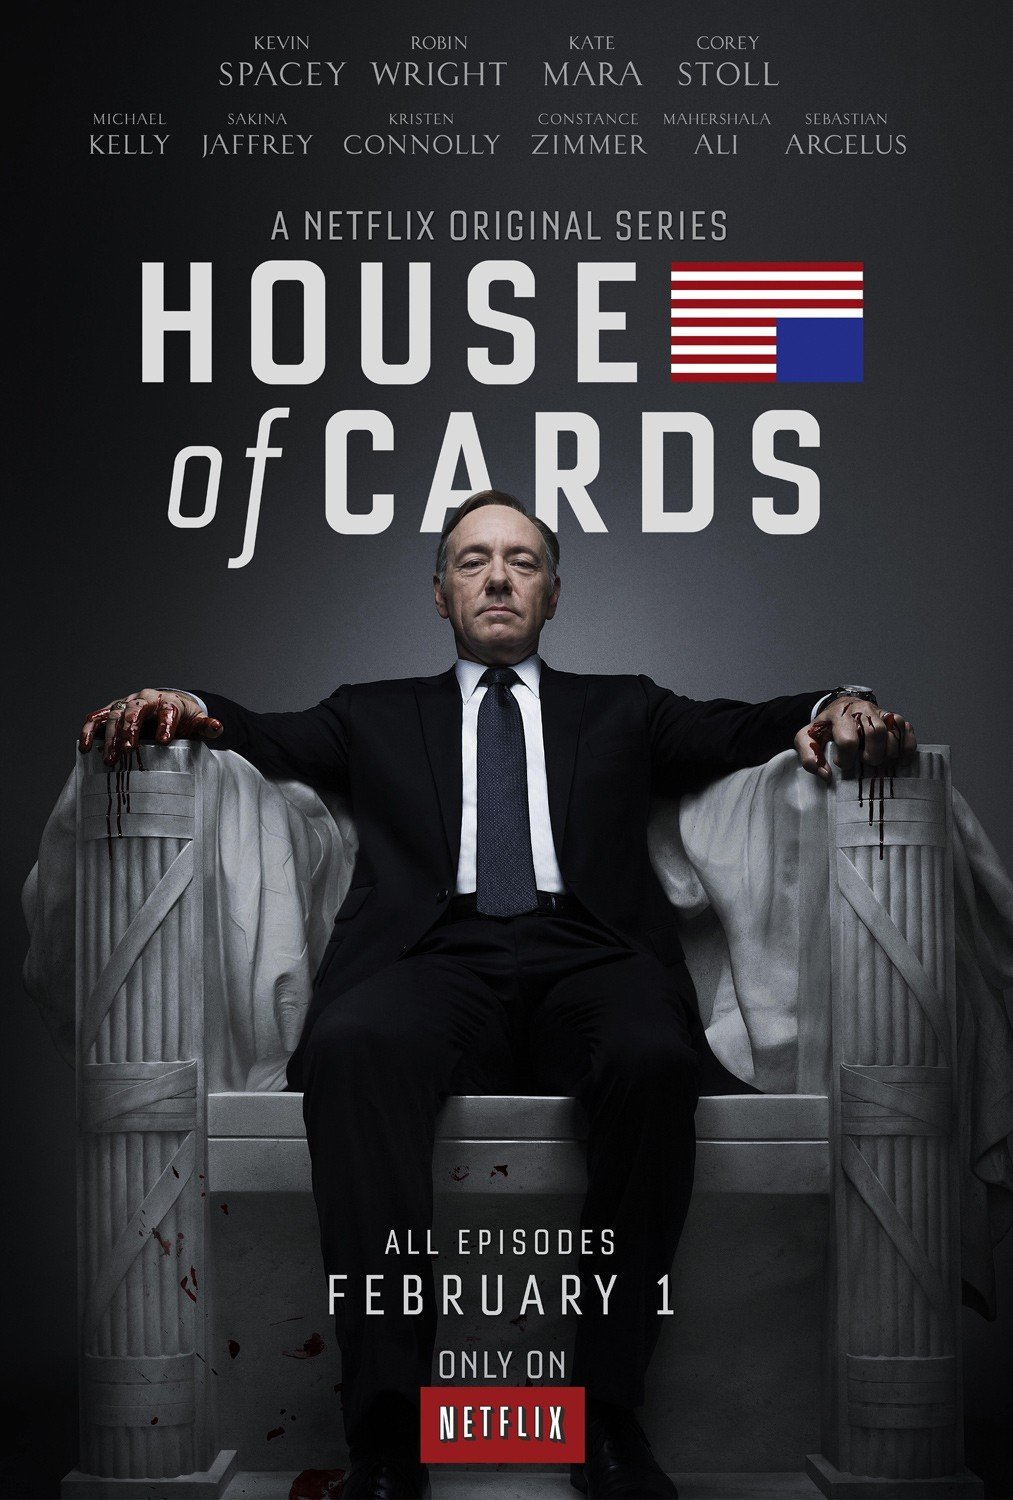 House of Cards (Season 1) 纸牌屋(第一季)